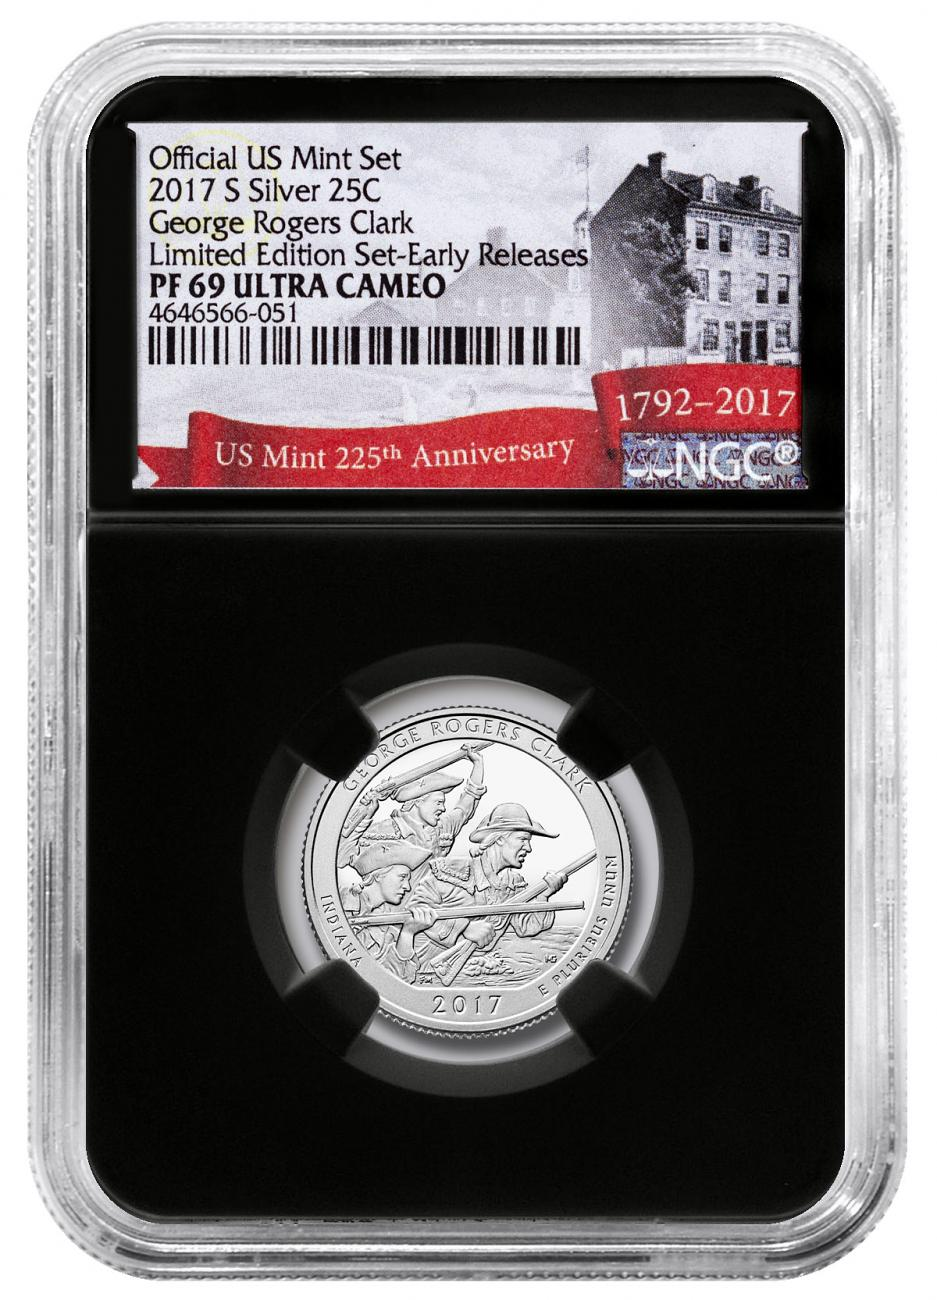 2017-S Silver George Rogers Clark National Historical Park Proof America the Beautiful Quarter From Limited Edition Silver Proof Set NGC PF69 UC ER Black Core Holder Exclusive U.S. Mint 225th Anniversary Label